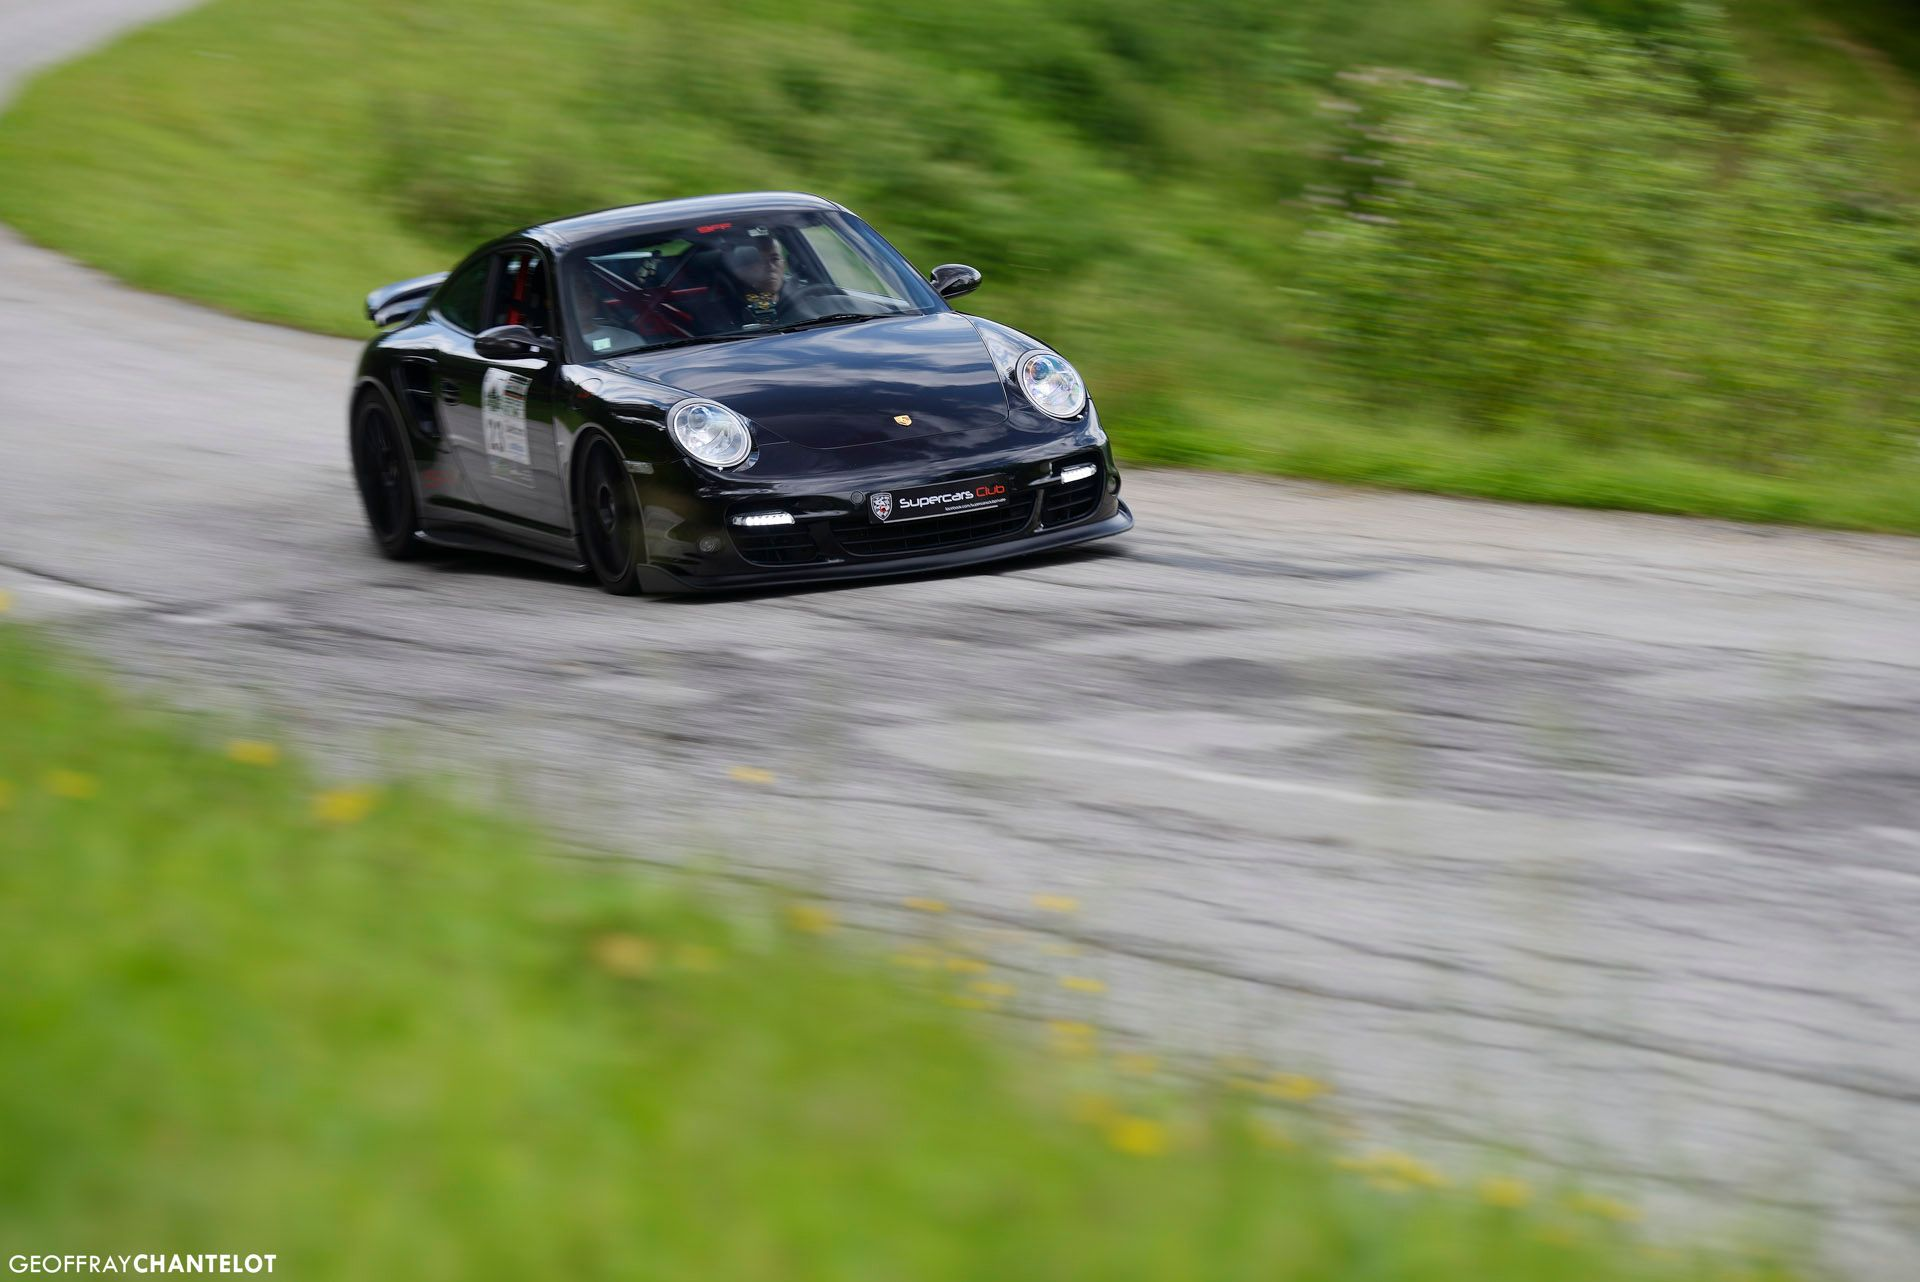 AMotor Sportive Day 2016 picture